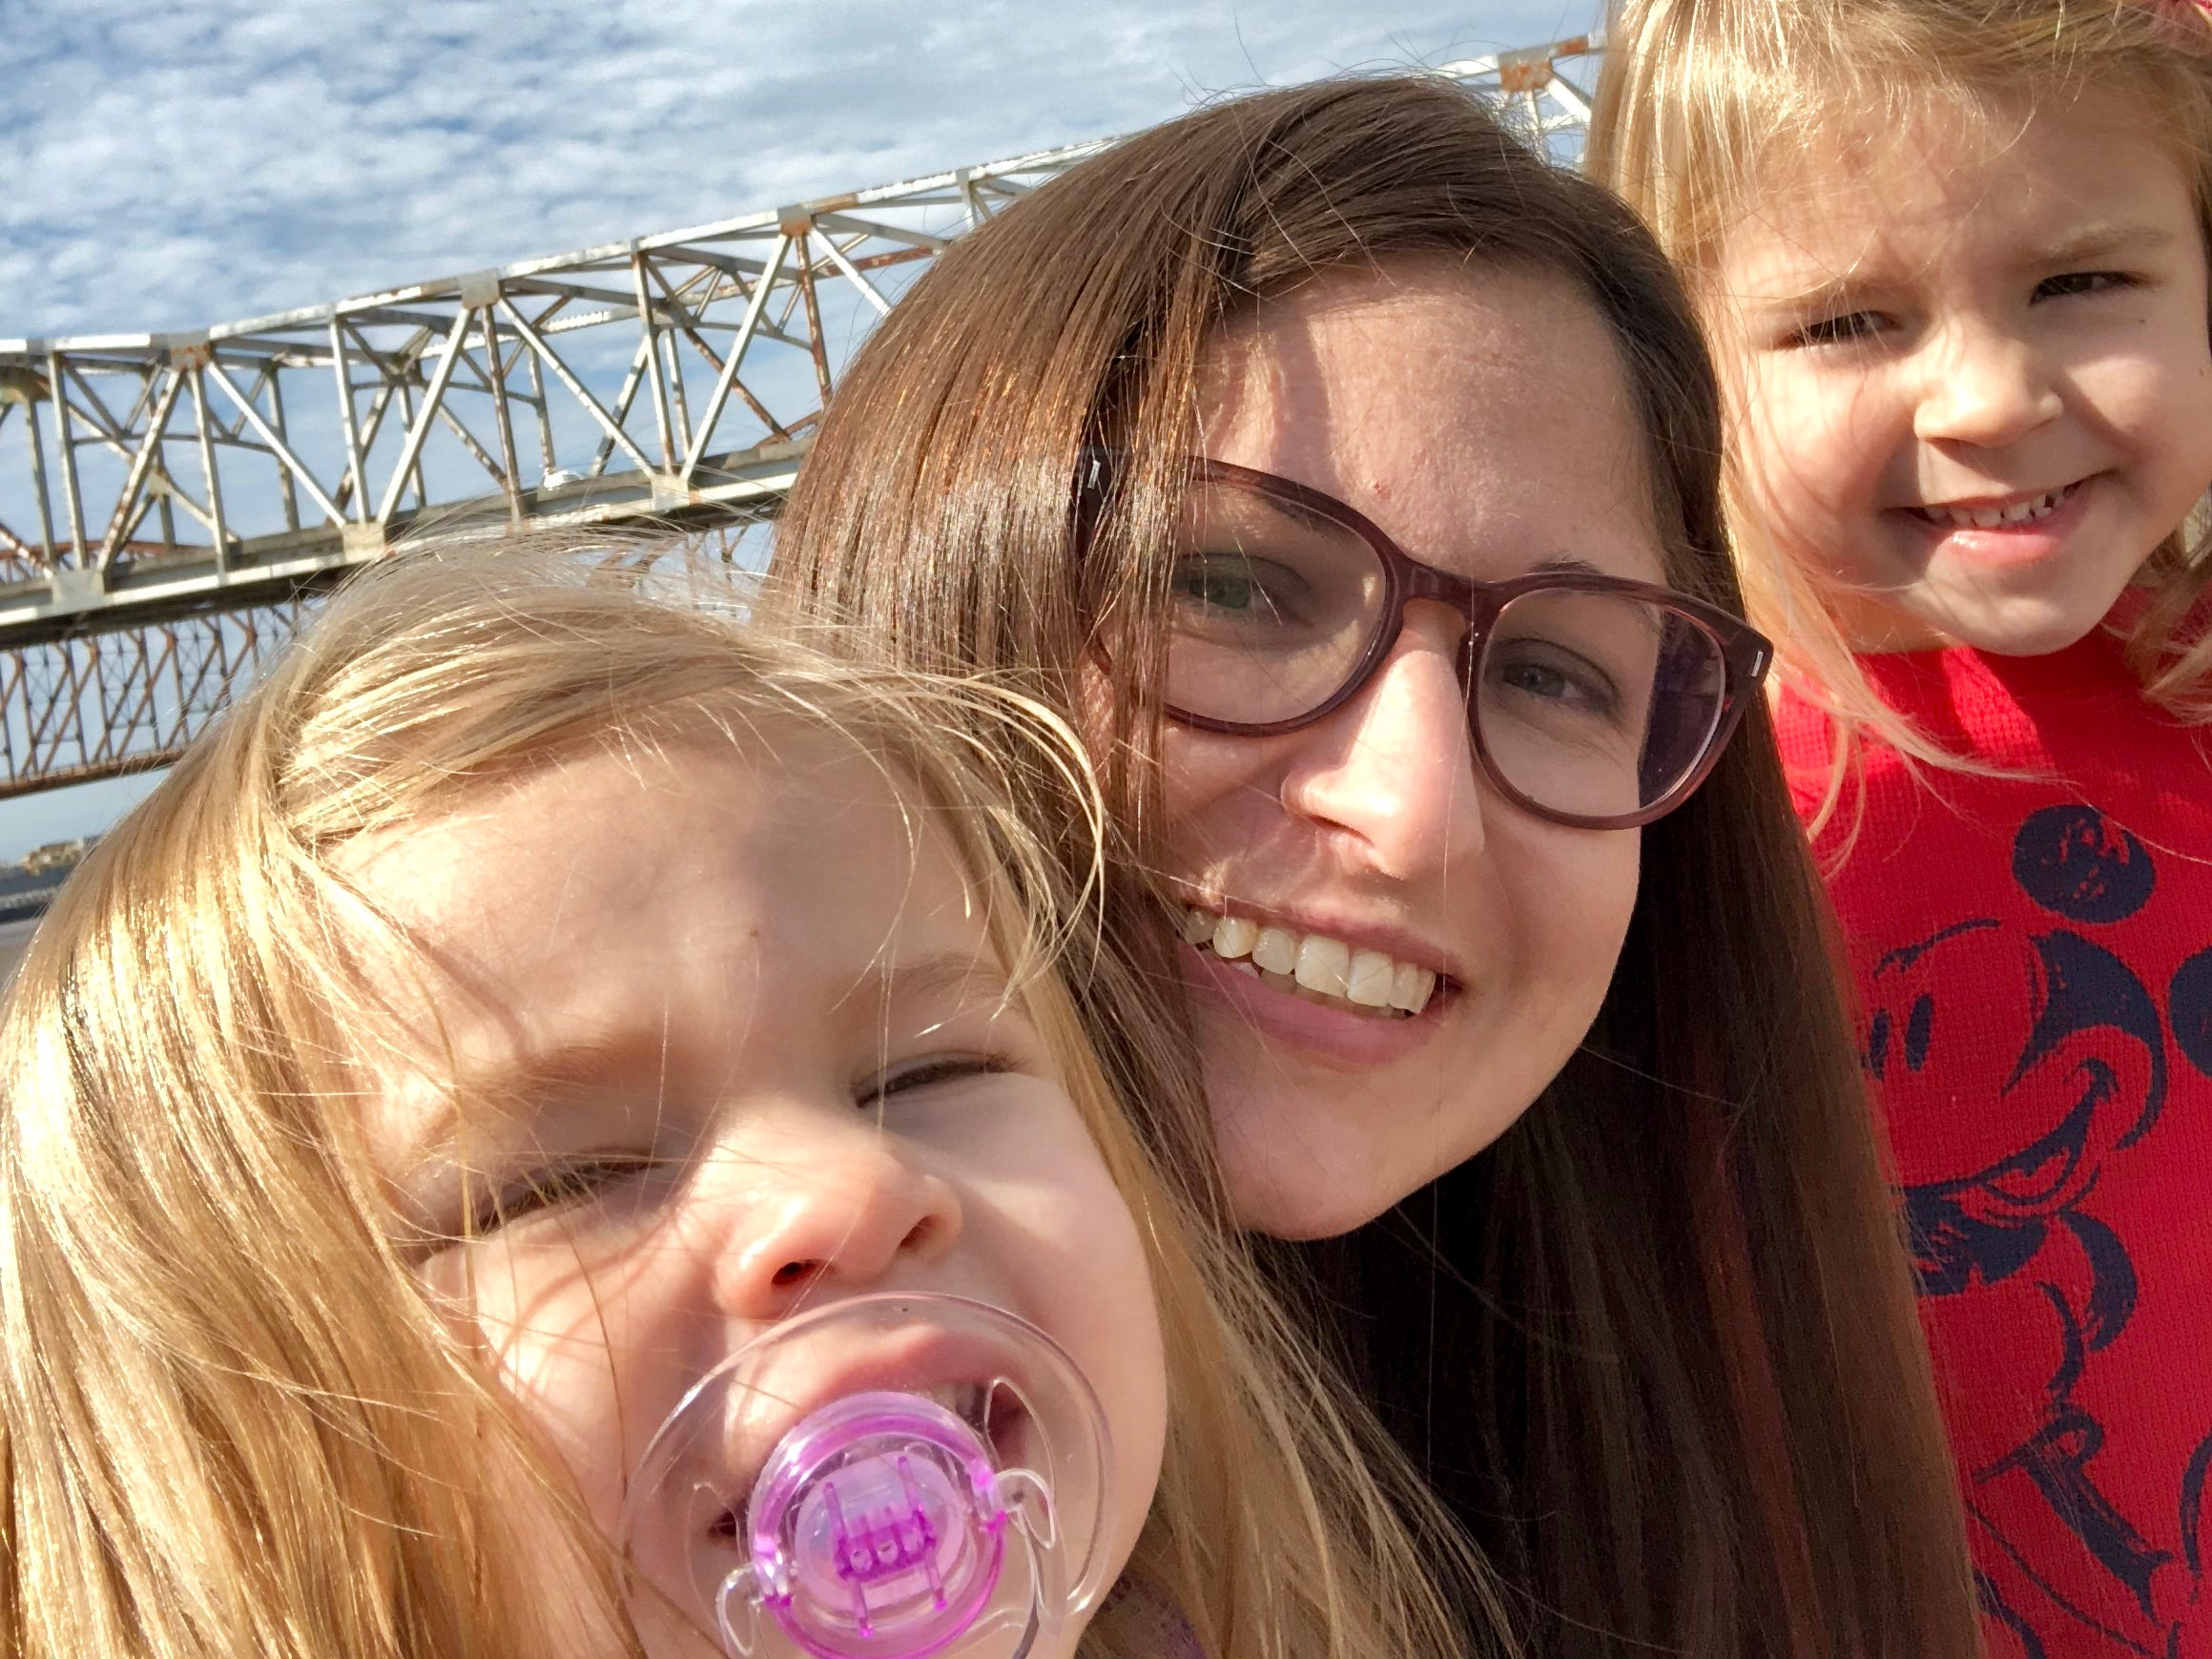 Reporter Leigh Guidry snaps a selfie with her daughters Avery and Marie in front of the Atchafalaya during their stop in Morgan City along the Bayou Teche Byway.